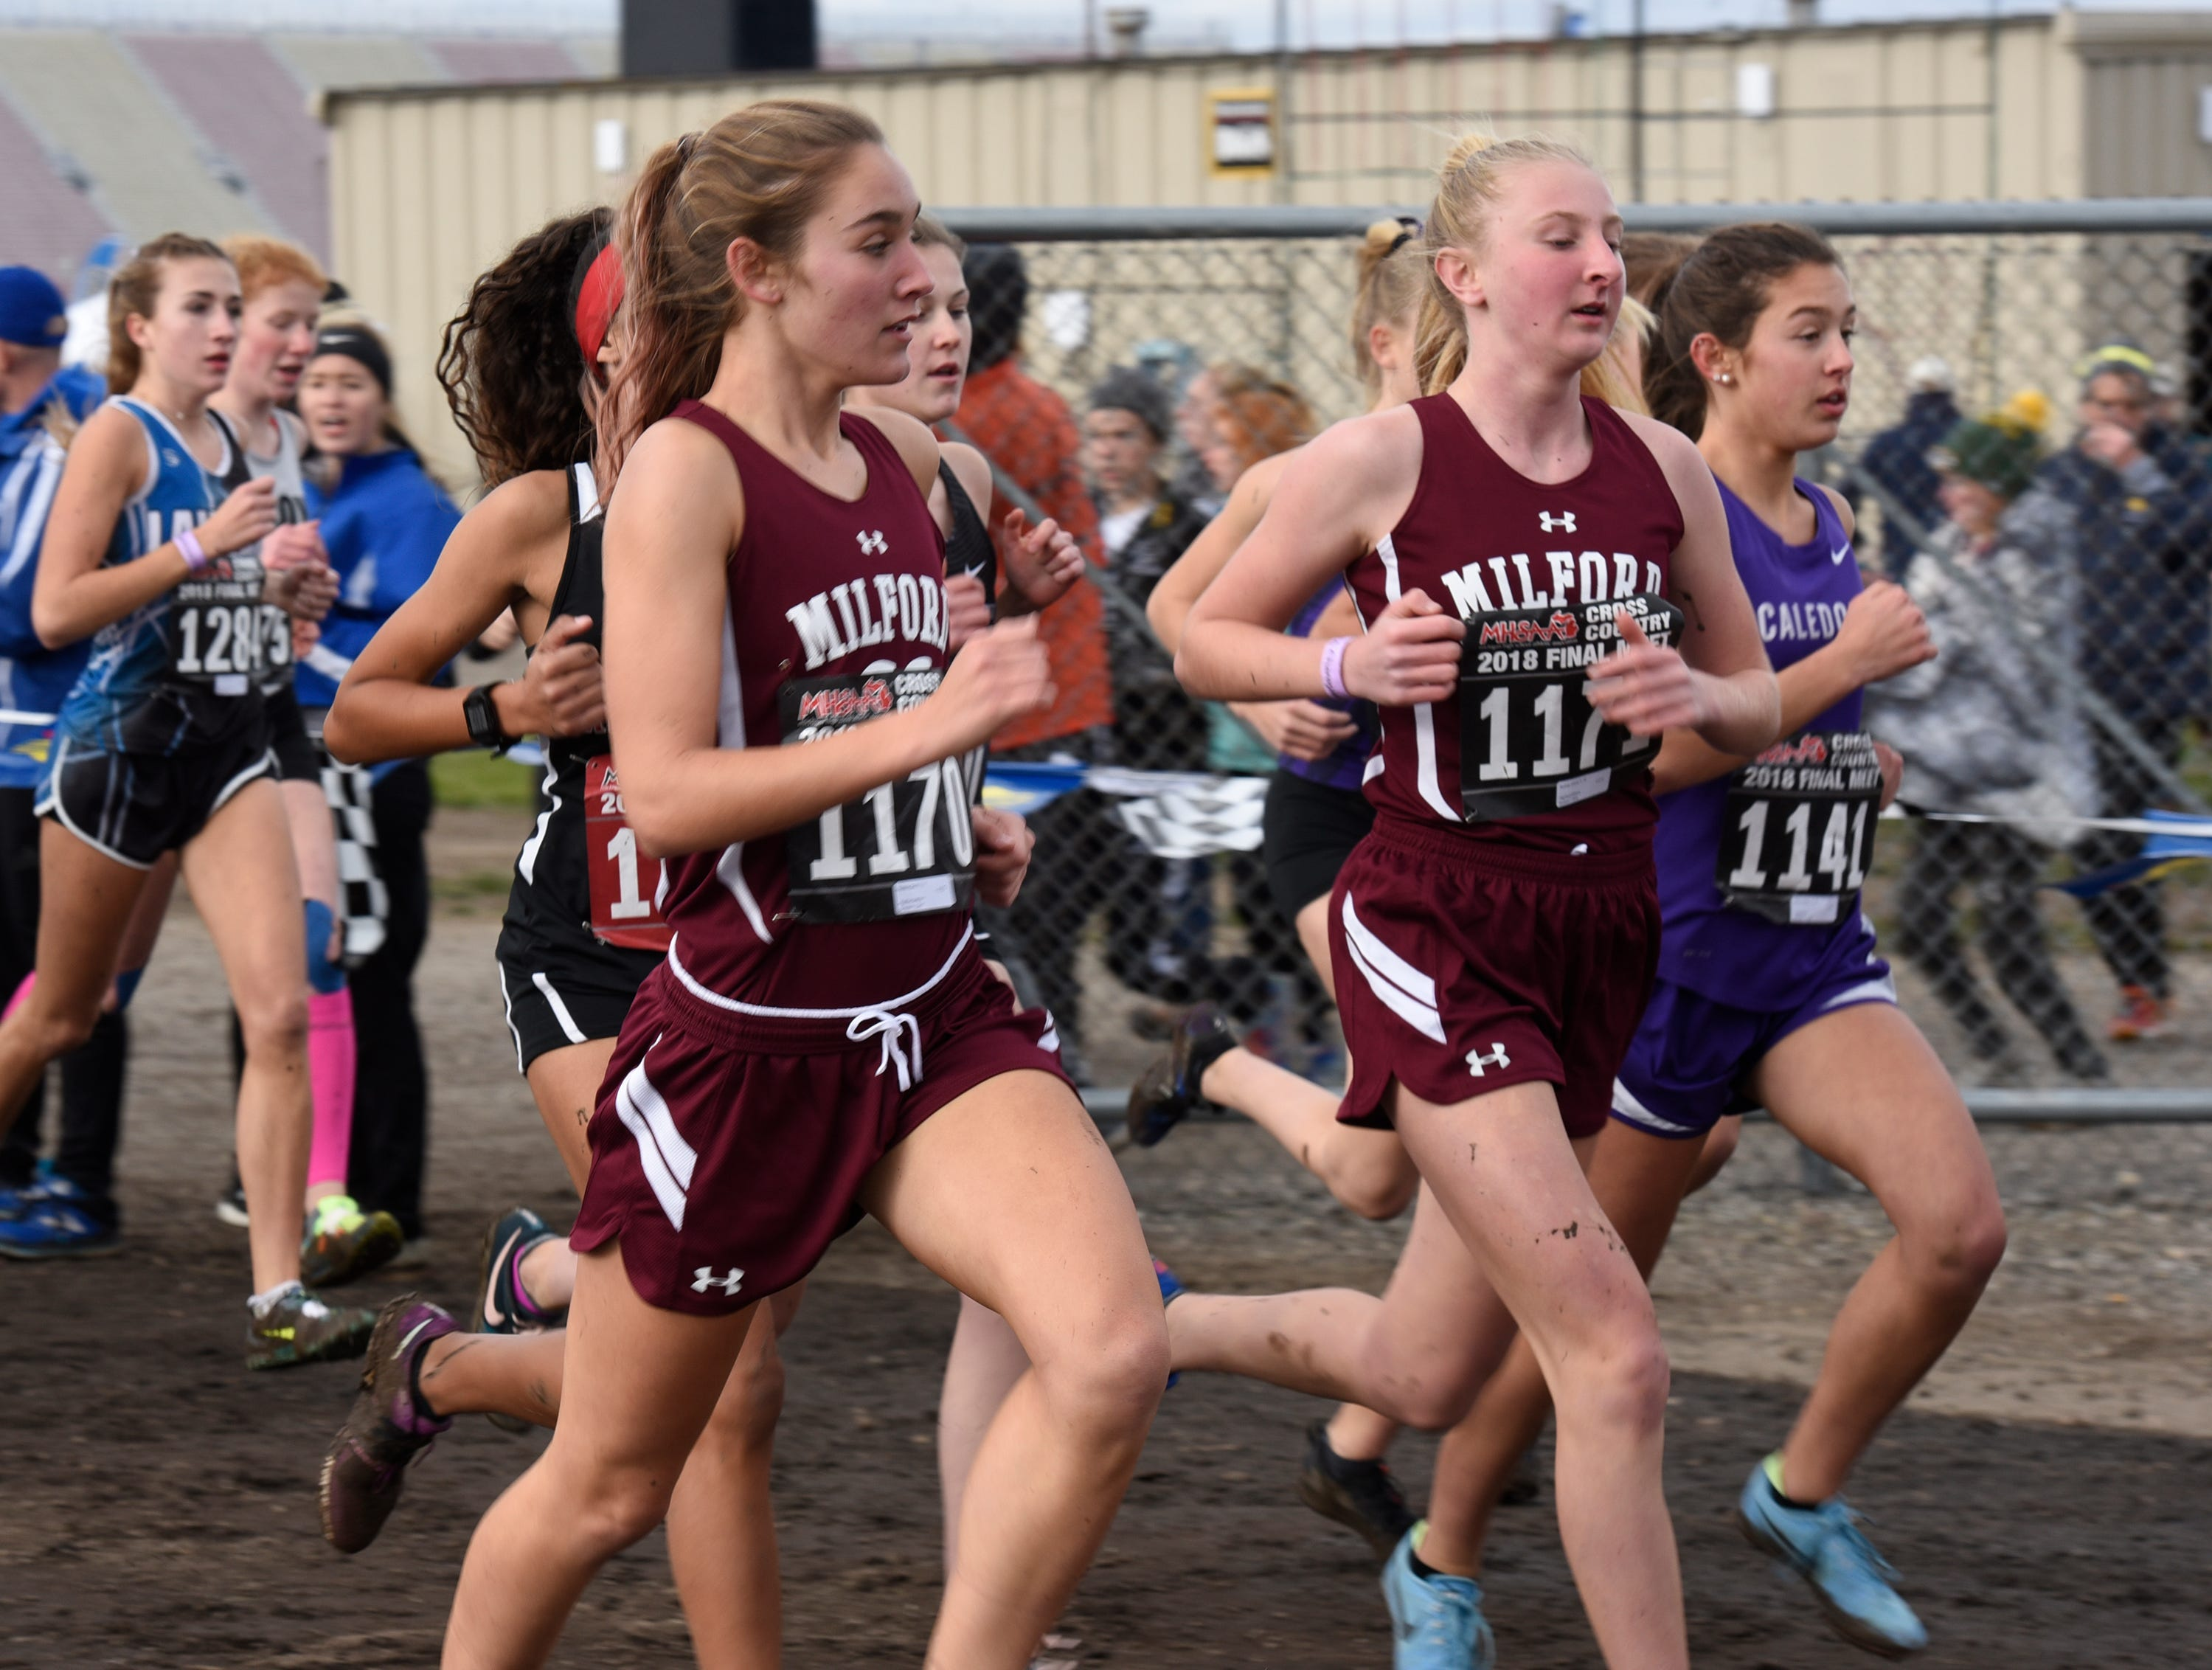 Milford runners Natalie Black (1170) and Sydney Chura (1171) during the Division 1 2018 cross country finals at Michigan International Speedway.